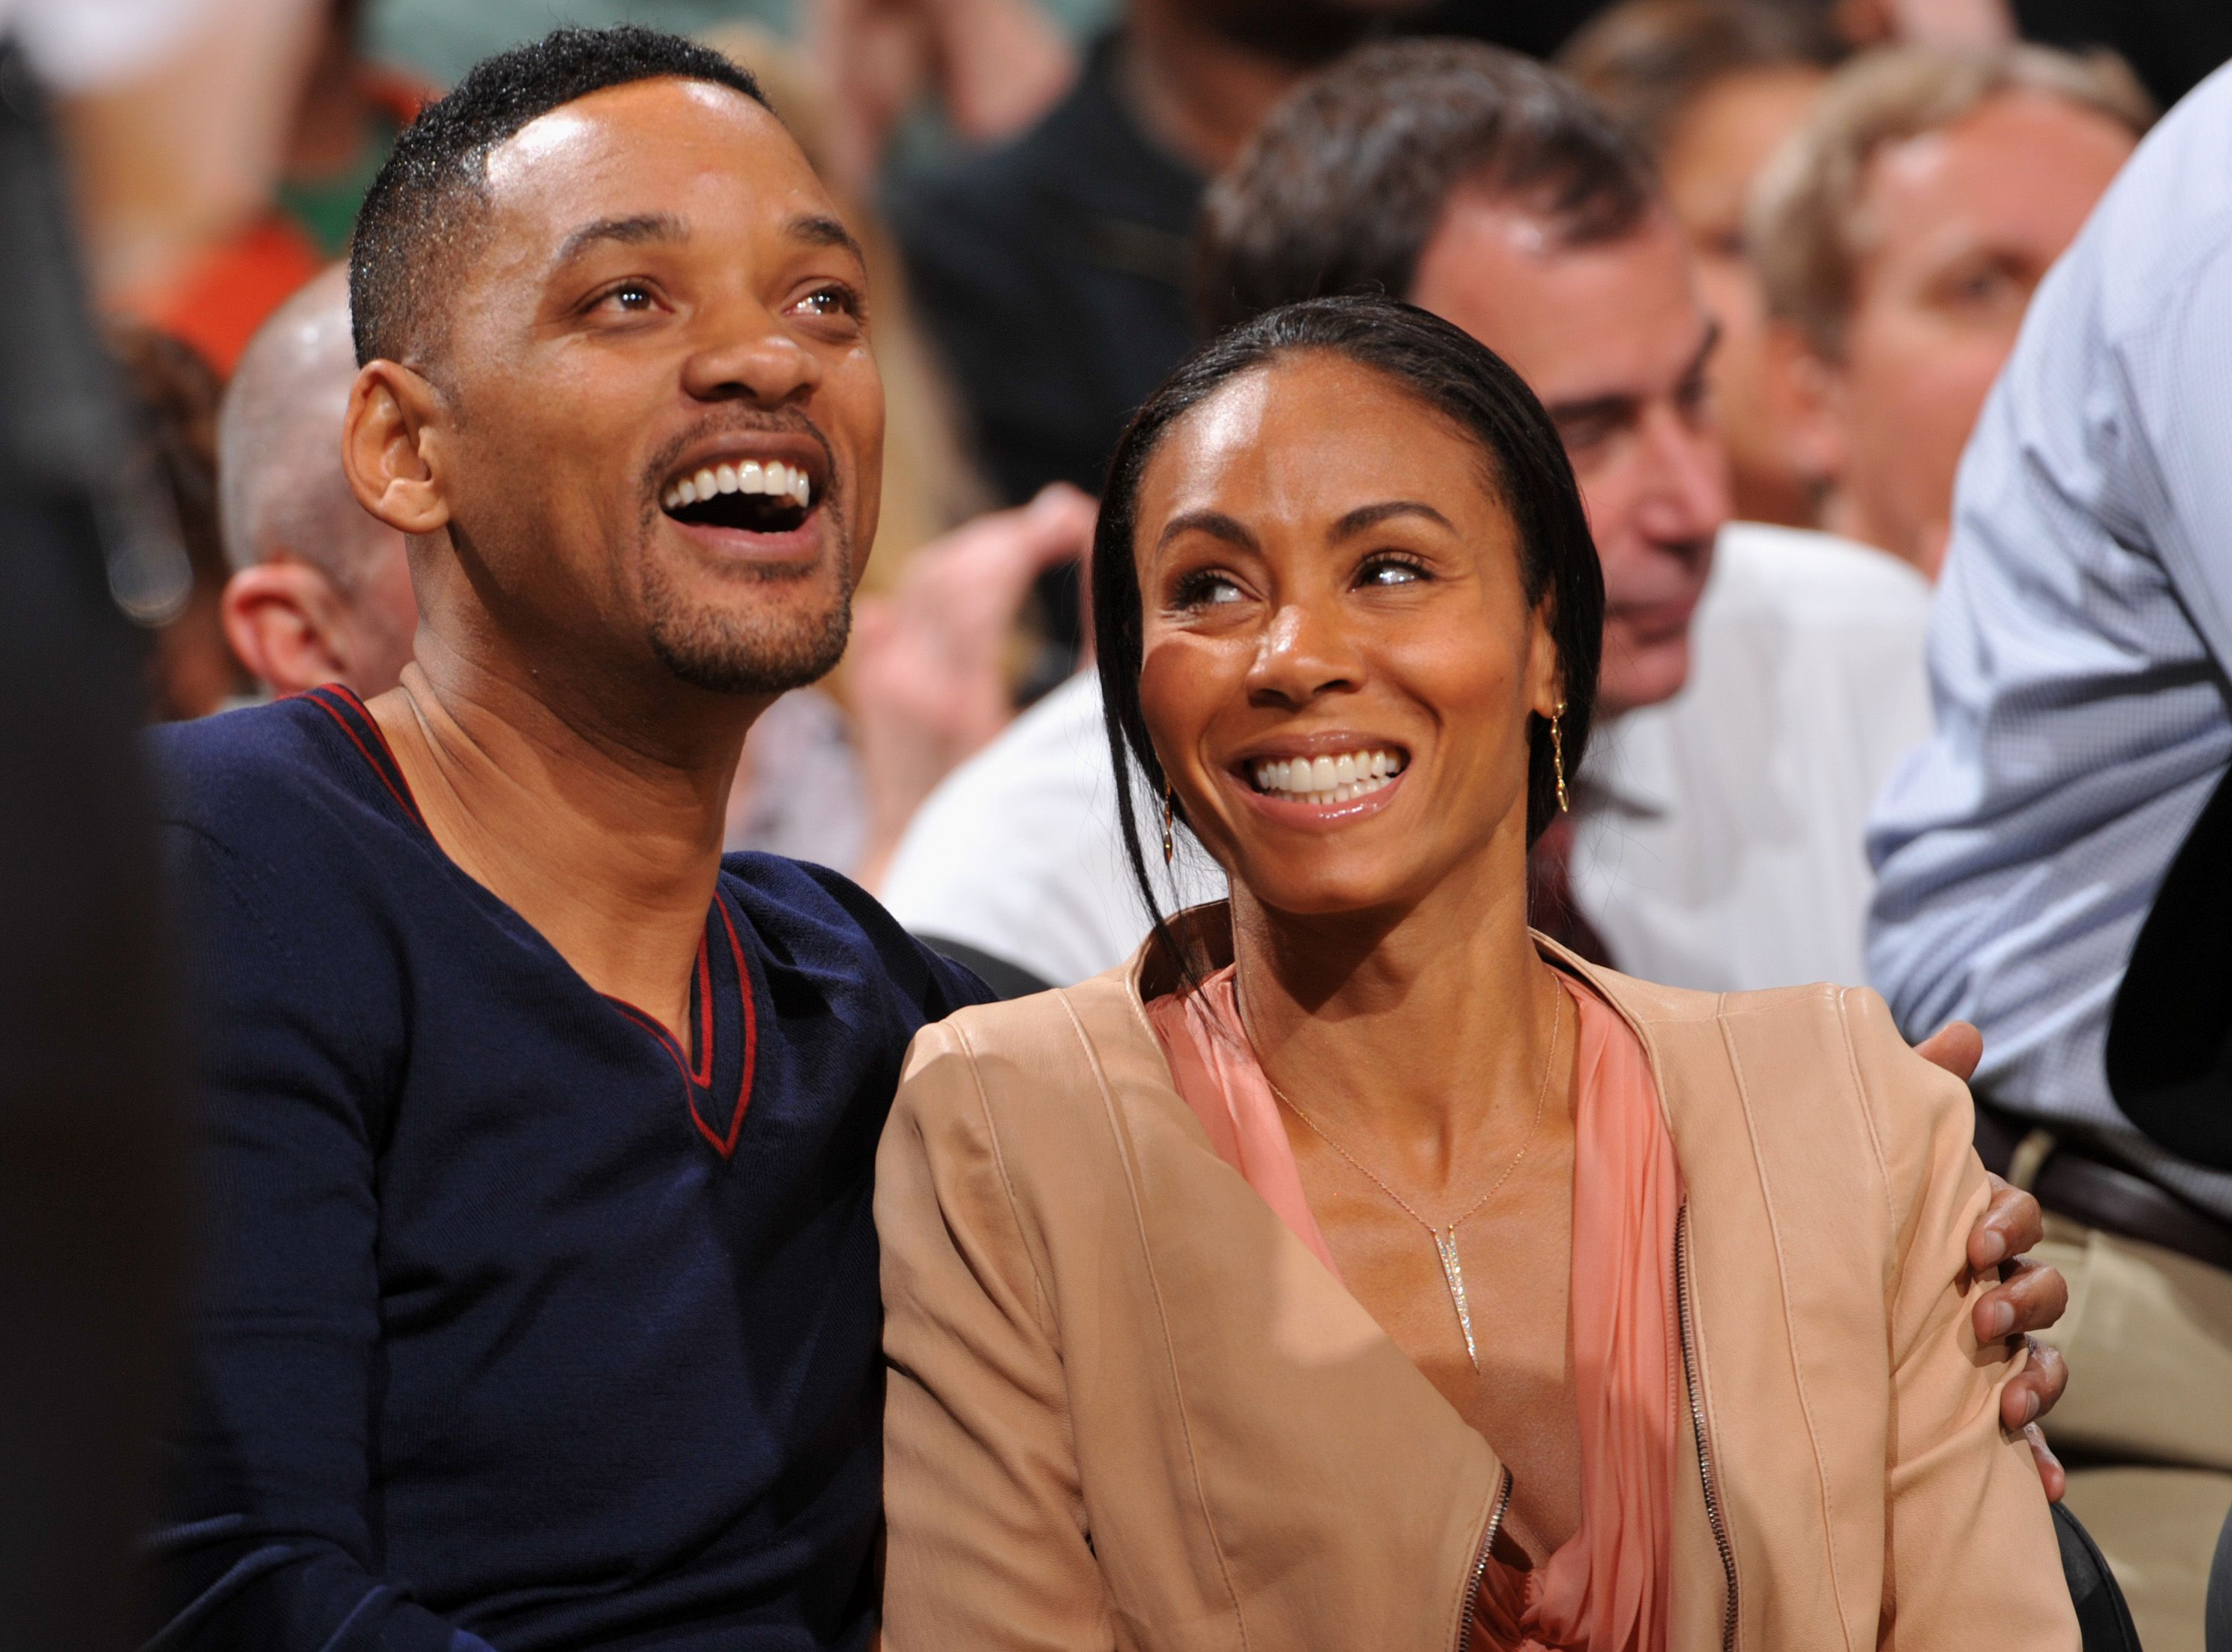 Will and Jada Pinkett Smith are in an open relationship / Getty Images